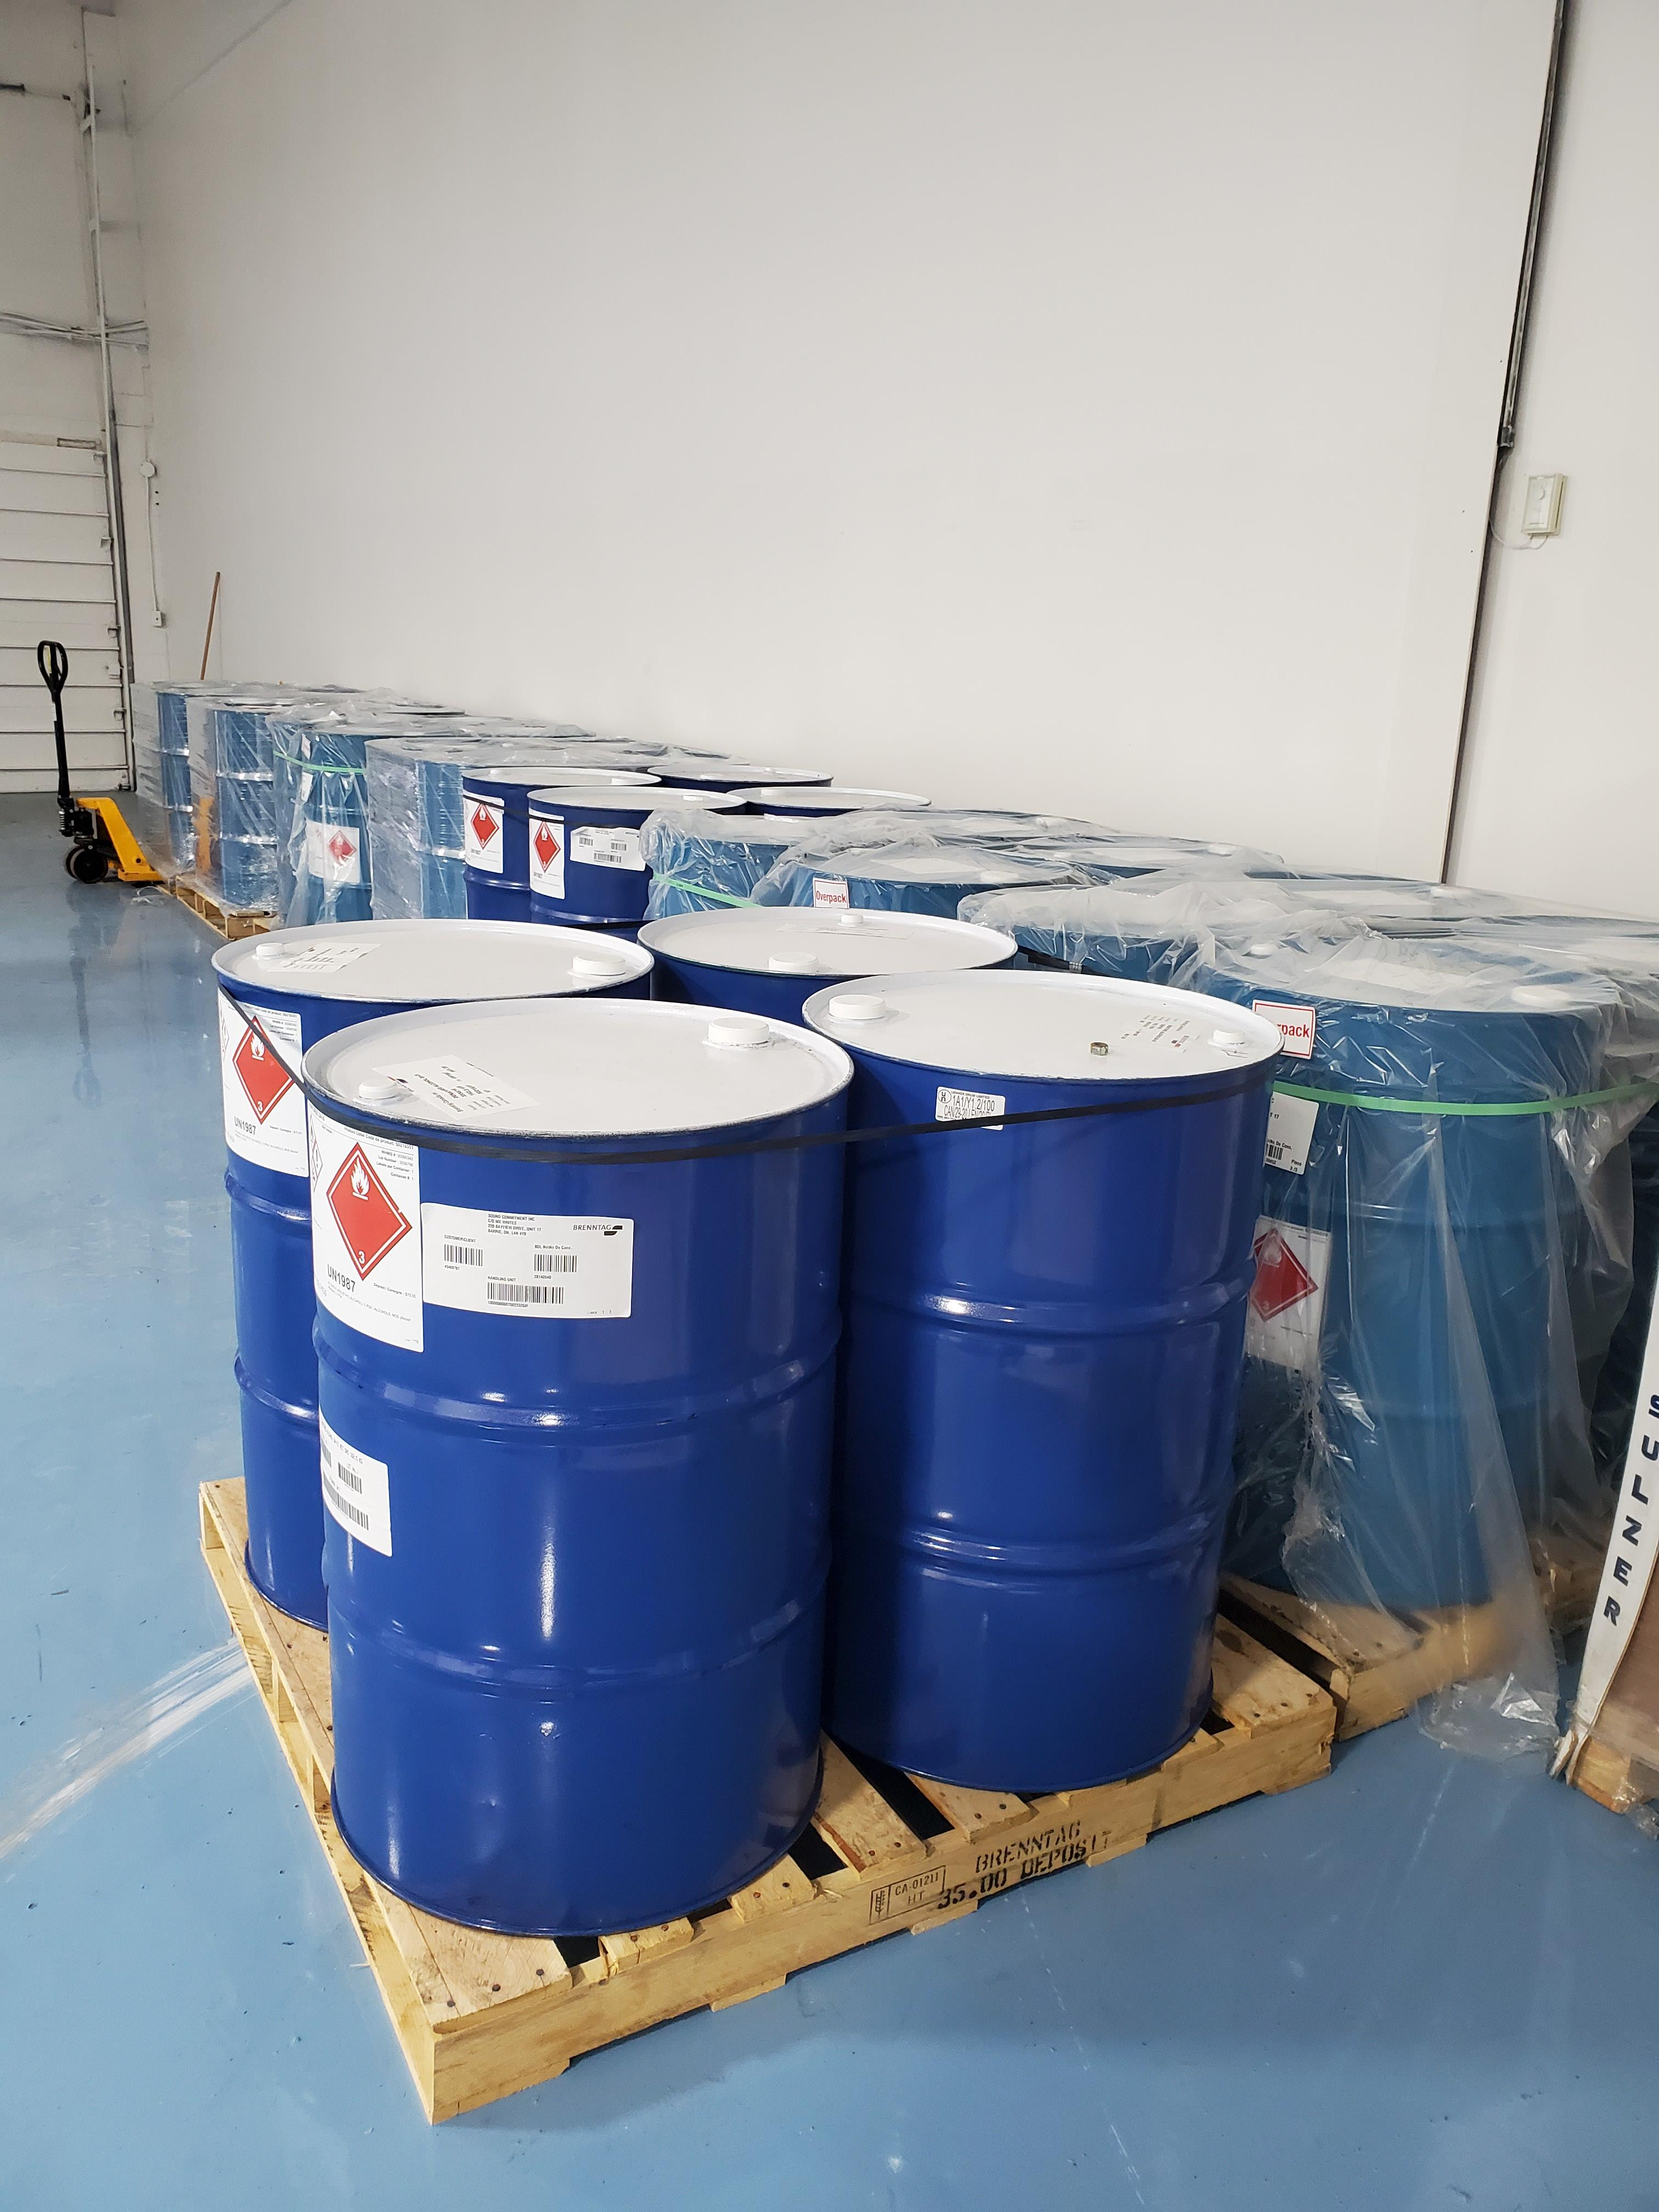 Package F - 8 Drums Denatured Alcohol DA-2I, New, Fresh, will include COA Location B1, Must be - Image 3 of 3